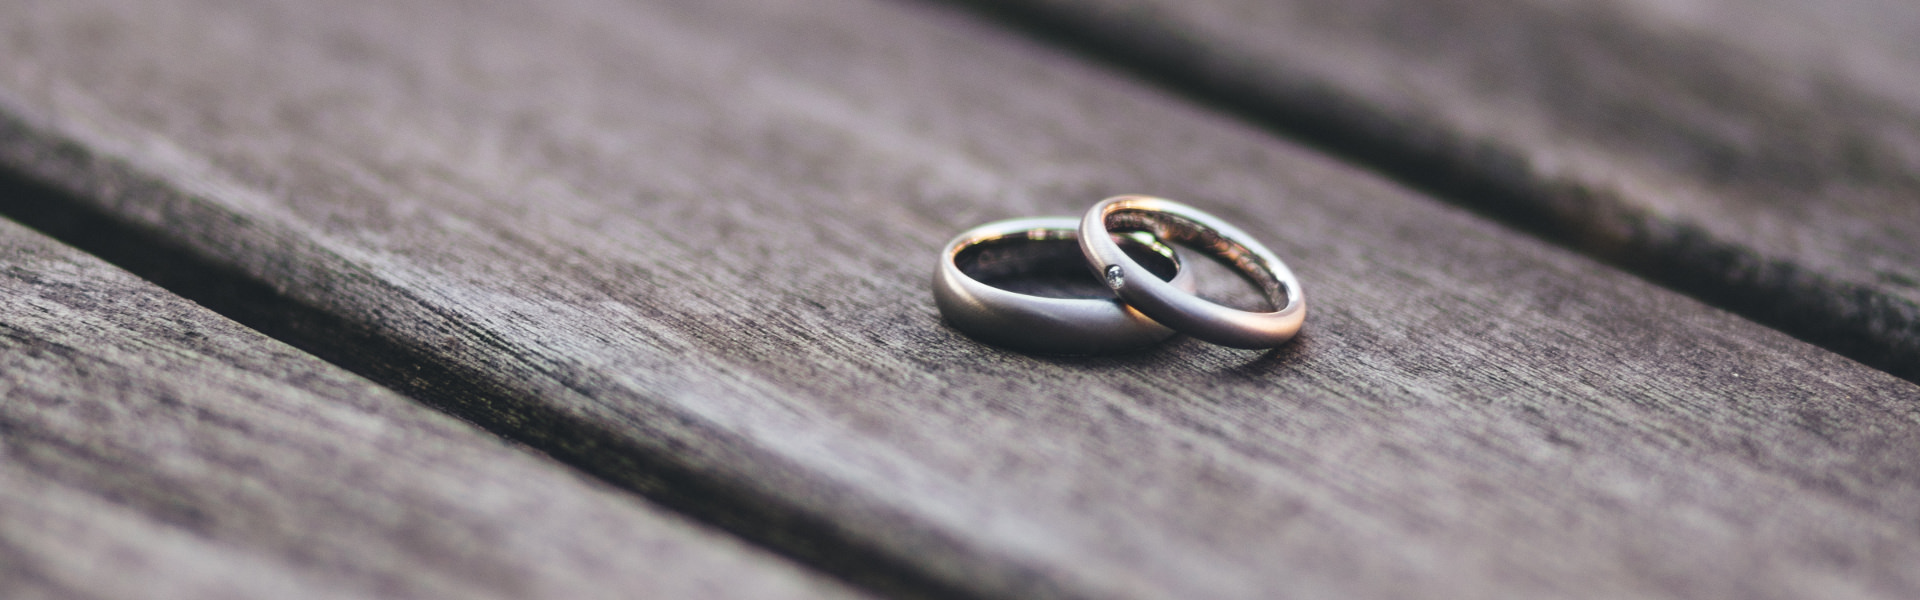 Pair of wedding rings on a plank board